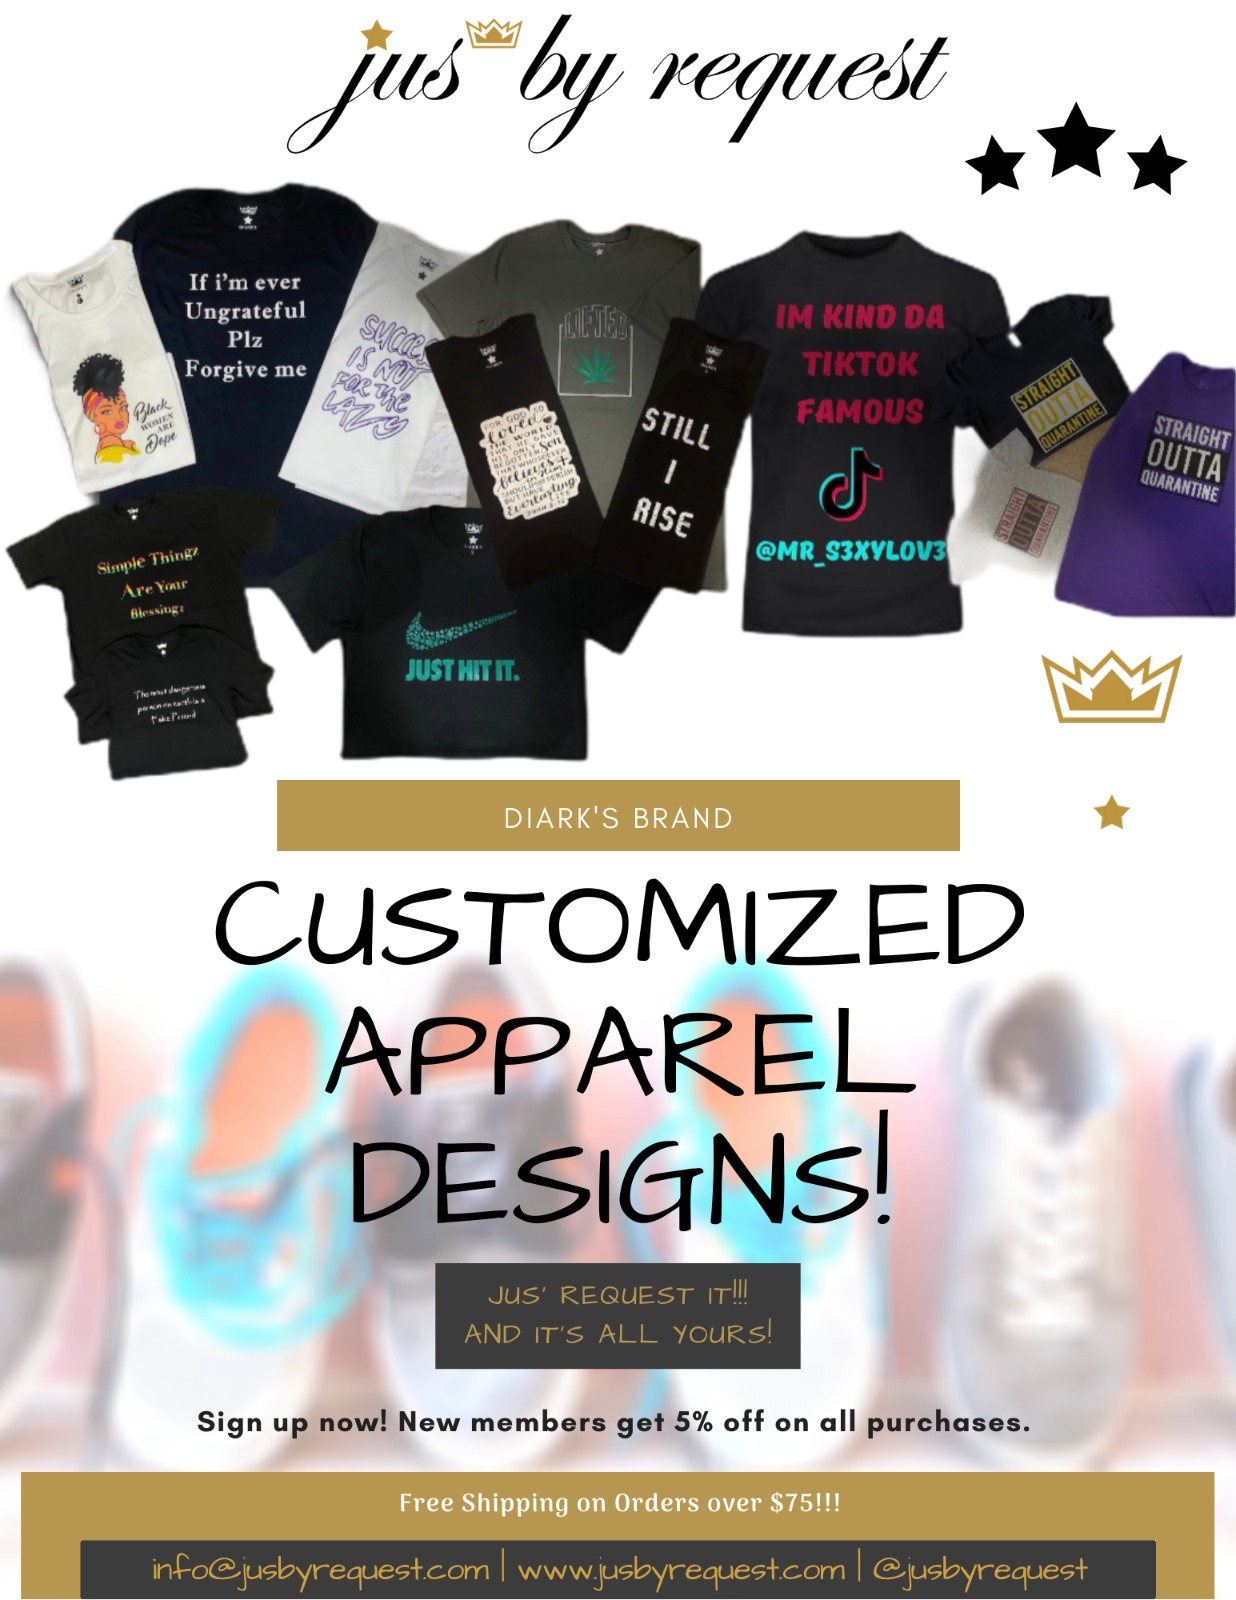 Customized Designs